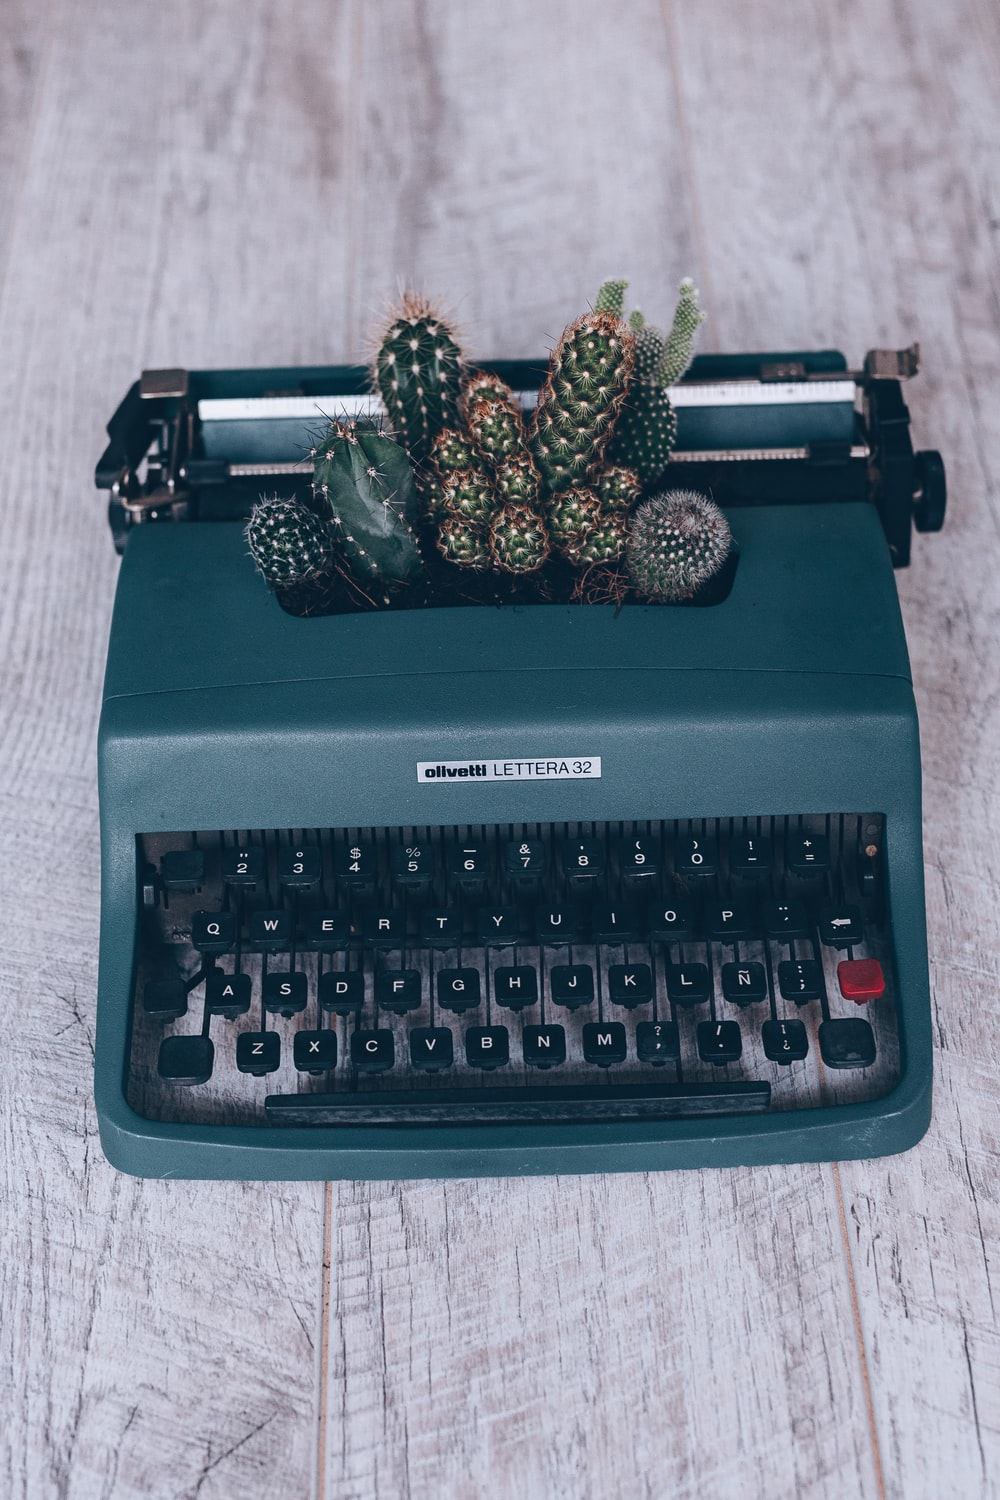 black and green Olympia typewriter and green cactus plant